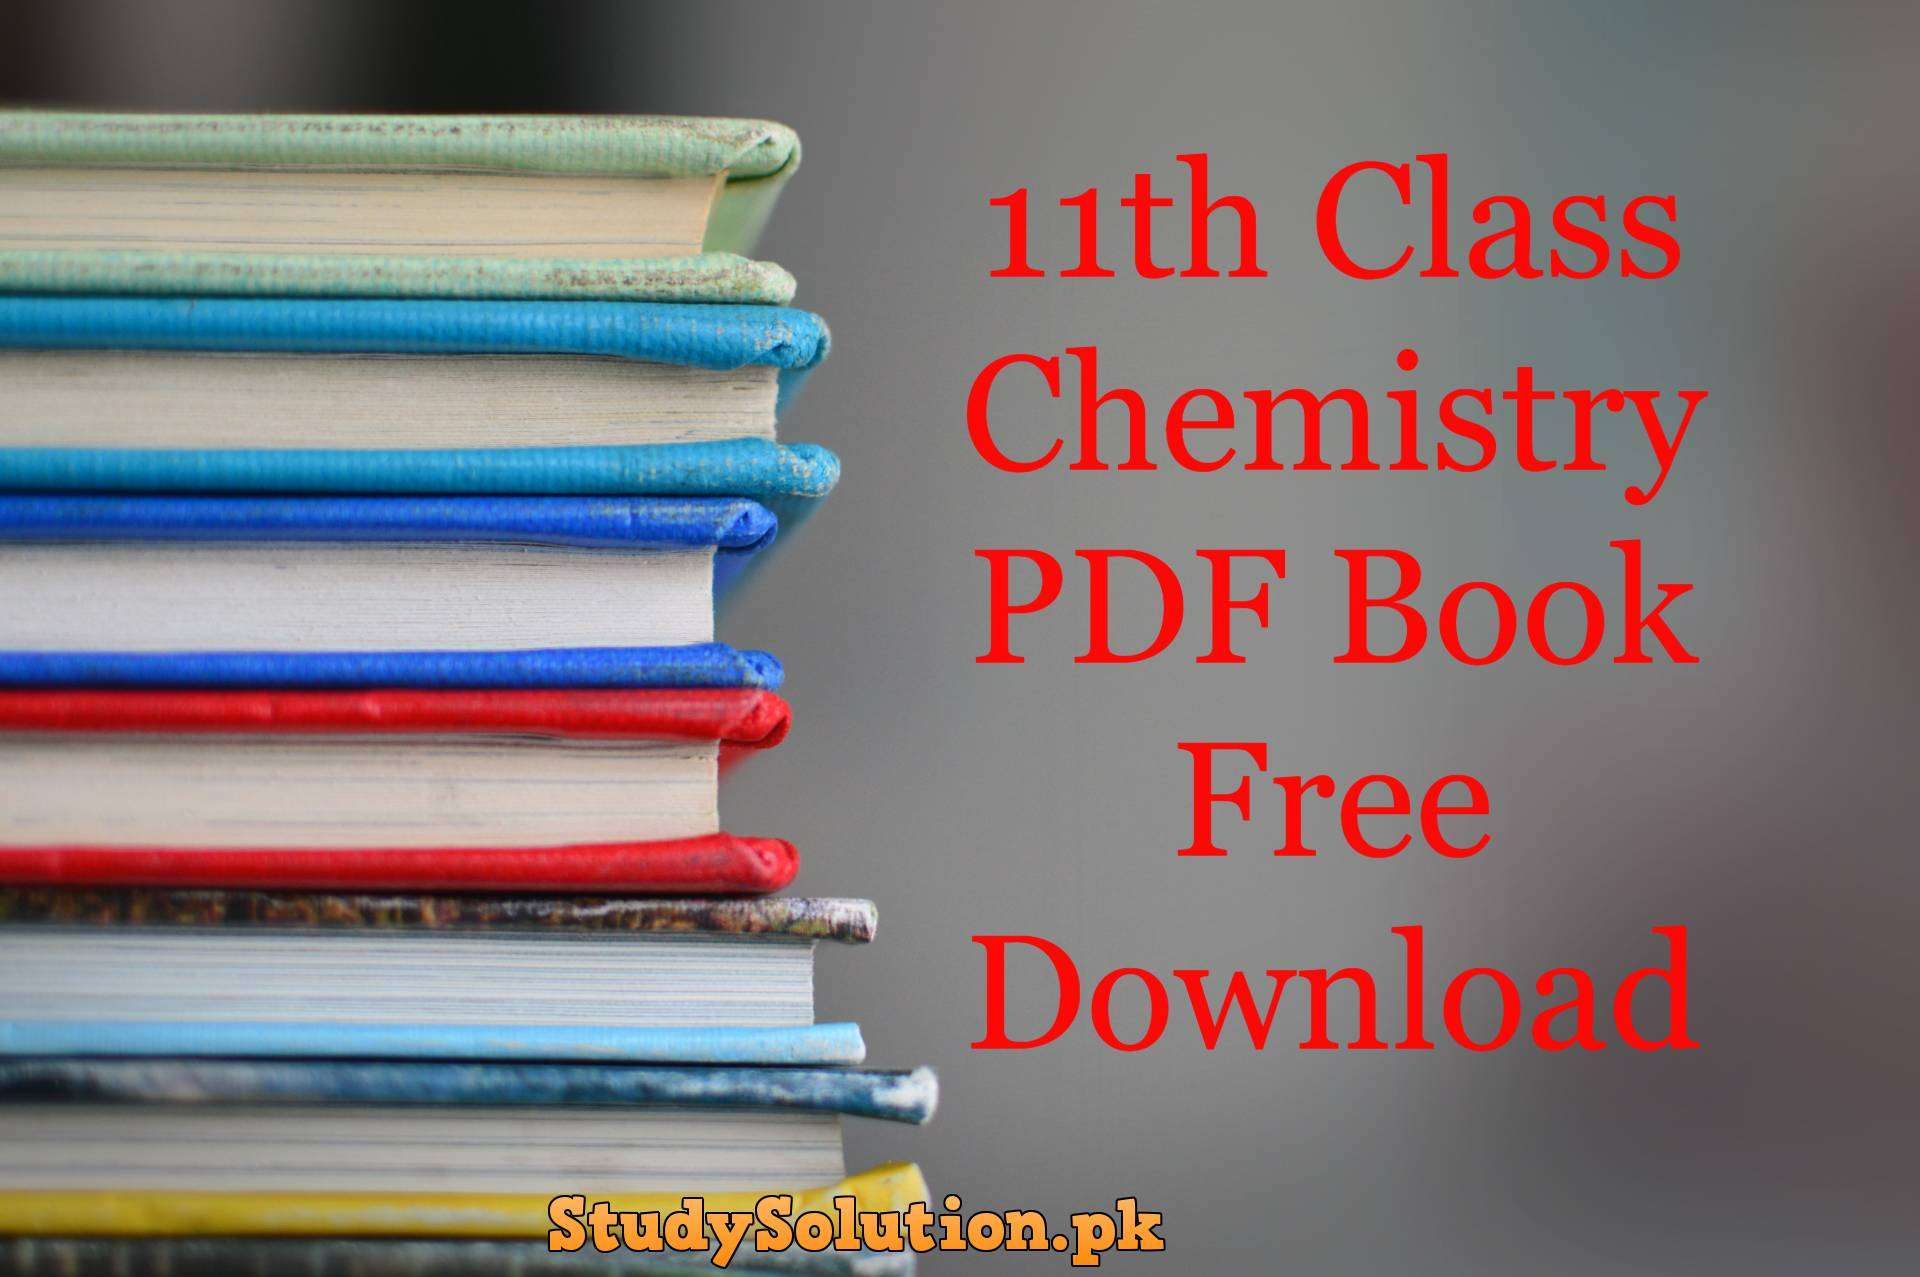 11th Class Chemistry PDF Book Free Download